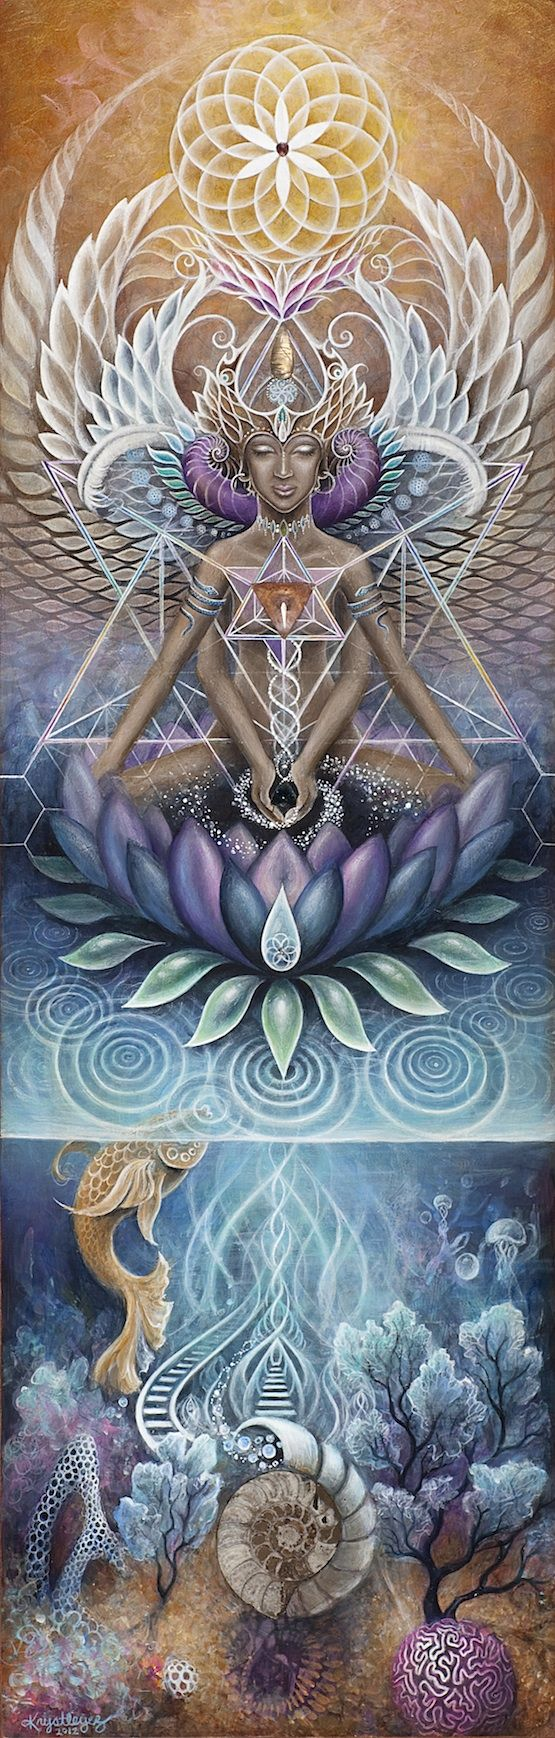 "She has but doesn't possess,acts but doesn't expect.She who is Earth and Her people are the same.We mend and weave the web of Life together. May the Great Mother continue blessing us all and calling us back to Life.  - Art: ""Luminessence"""